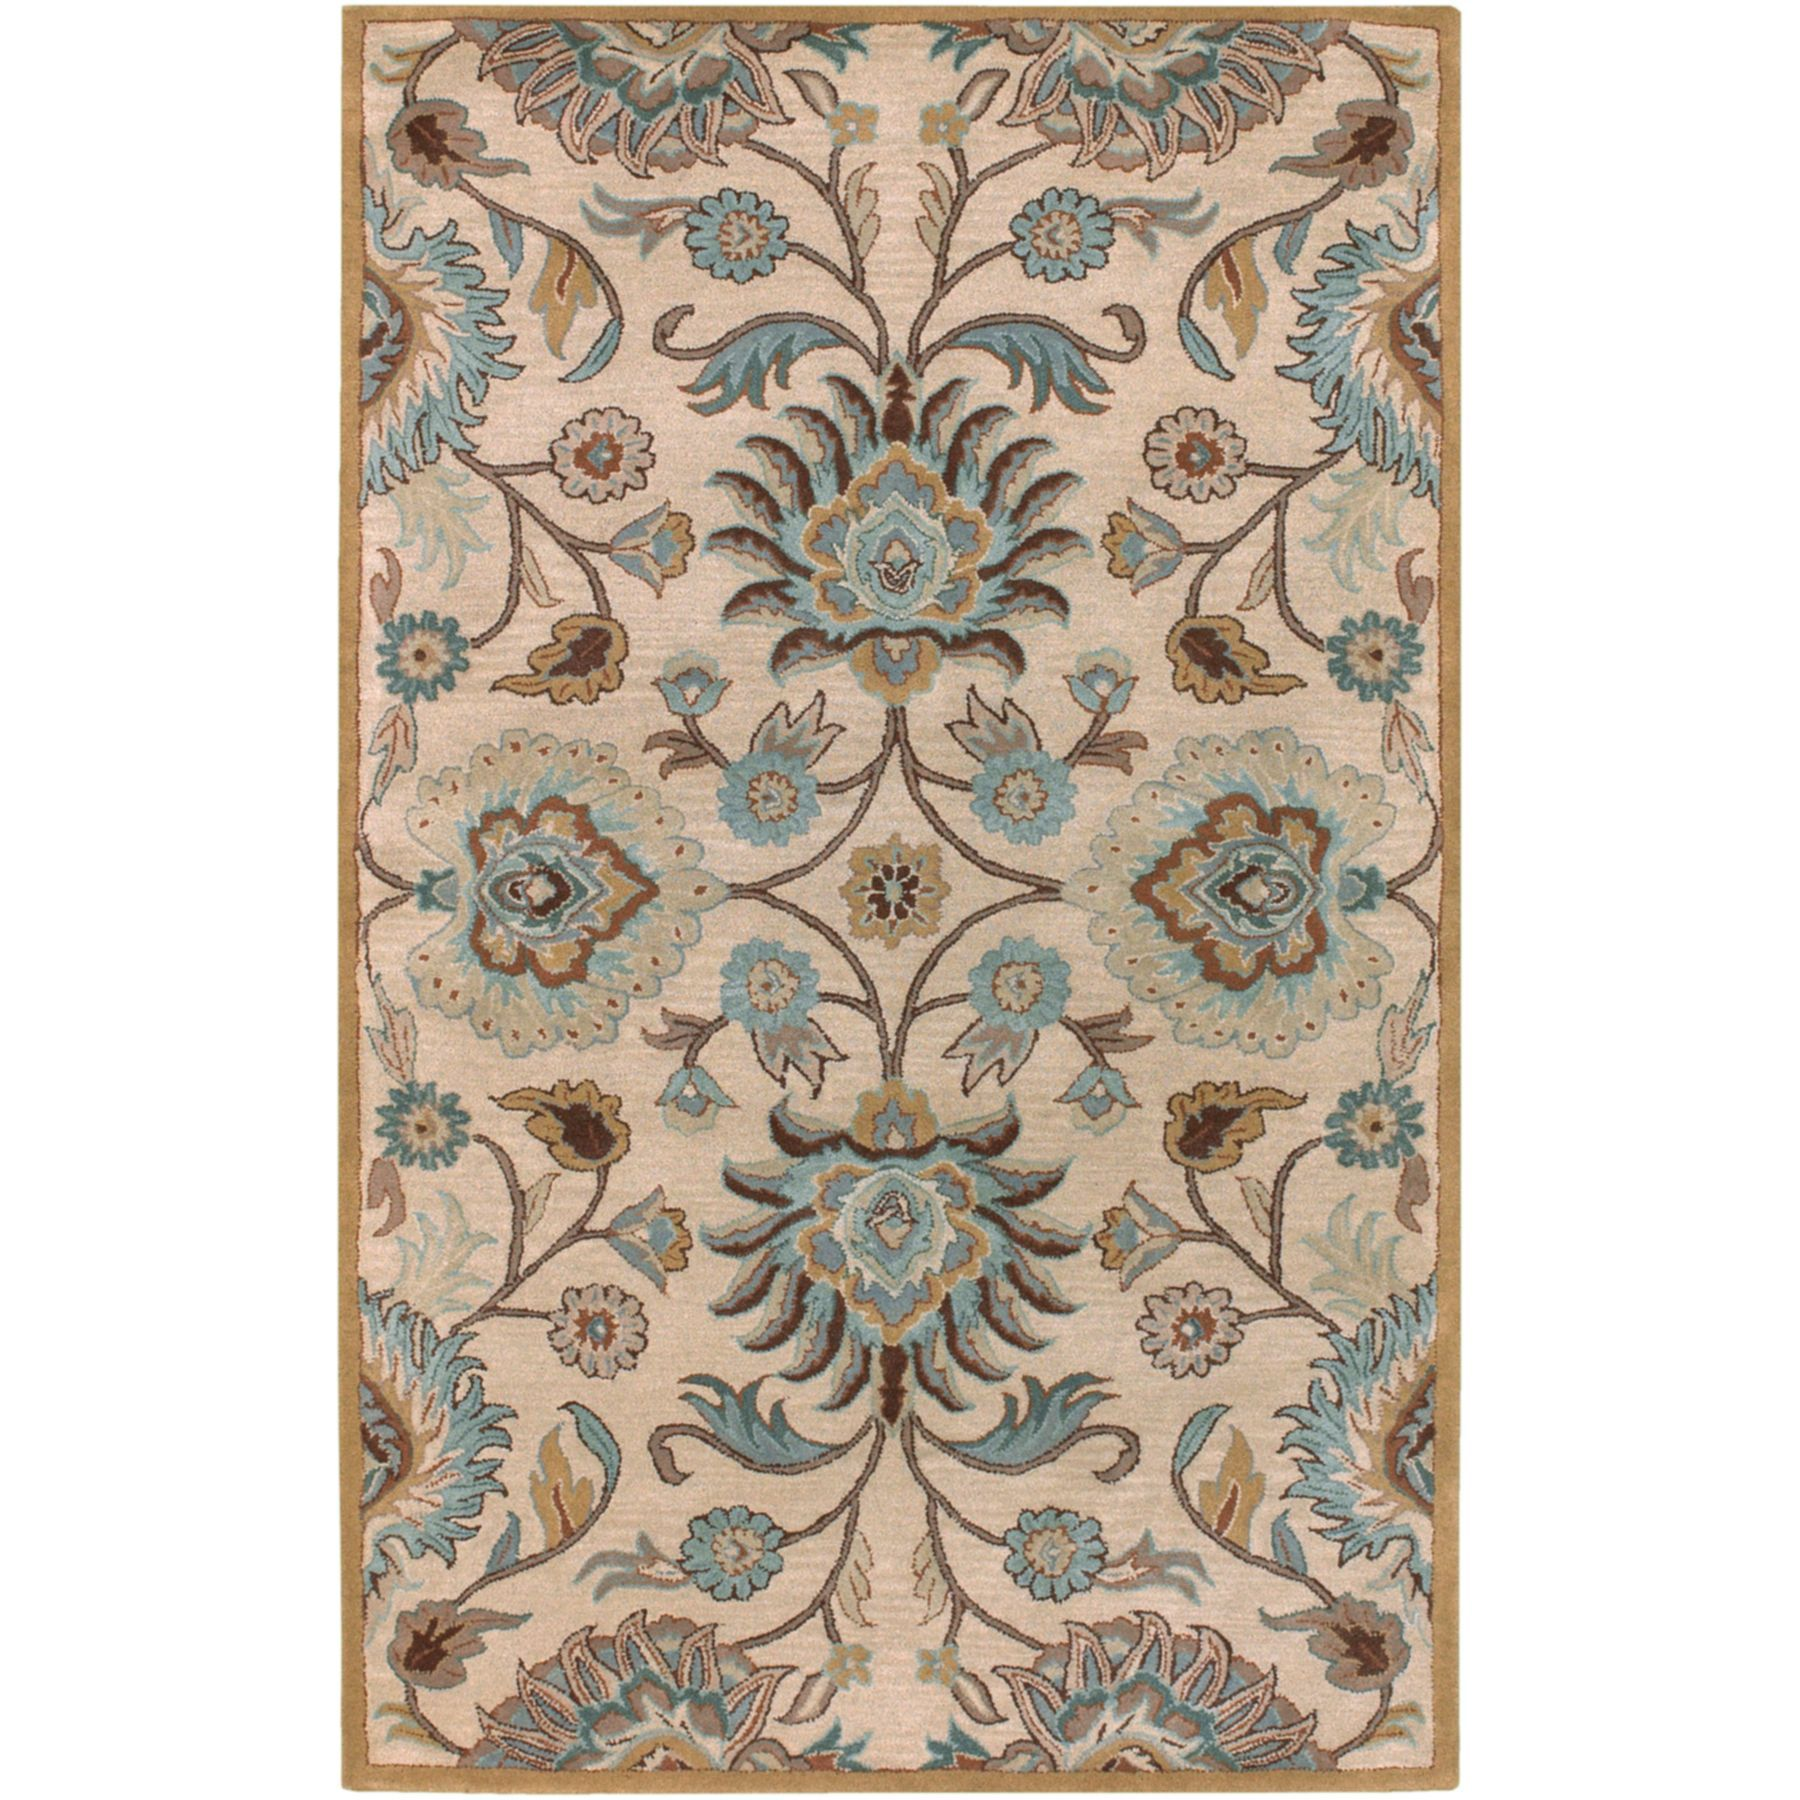 Hand Tufted In 100 Wool This Rug Features A Traditional Design